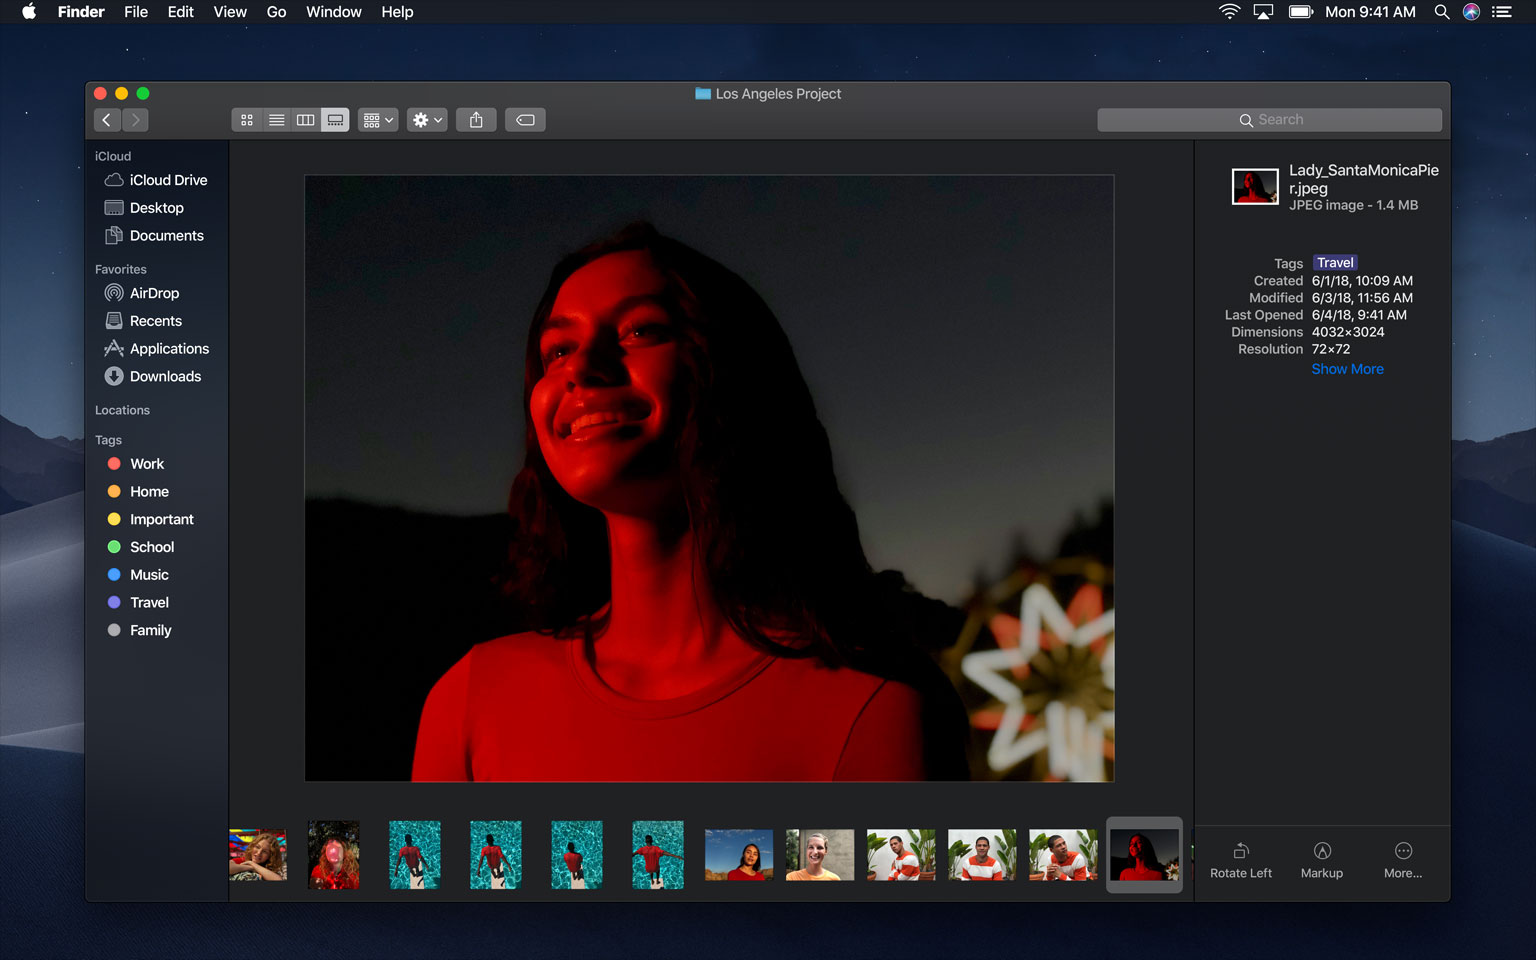 6f3283b30e8 The Finder on macOS Mojave brings a new Gallery View that lets you view  image metadata